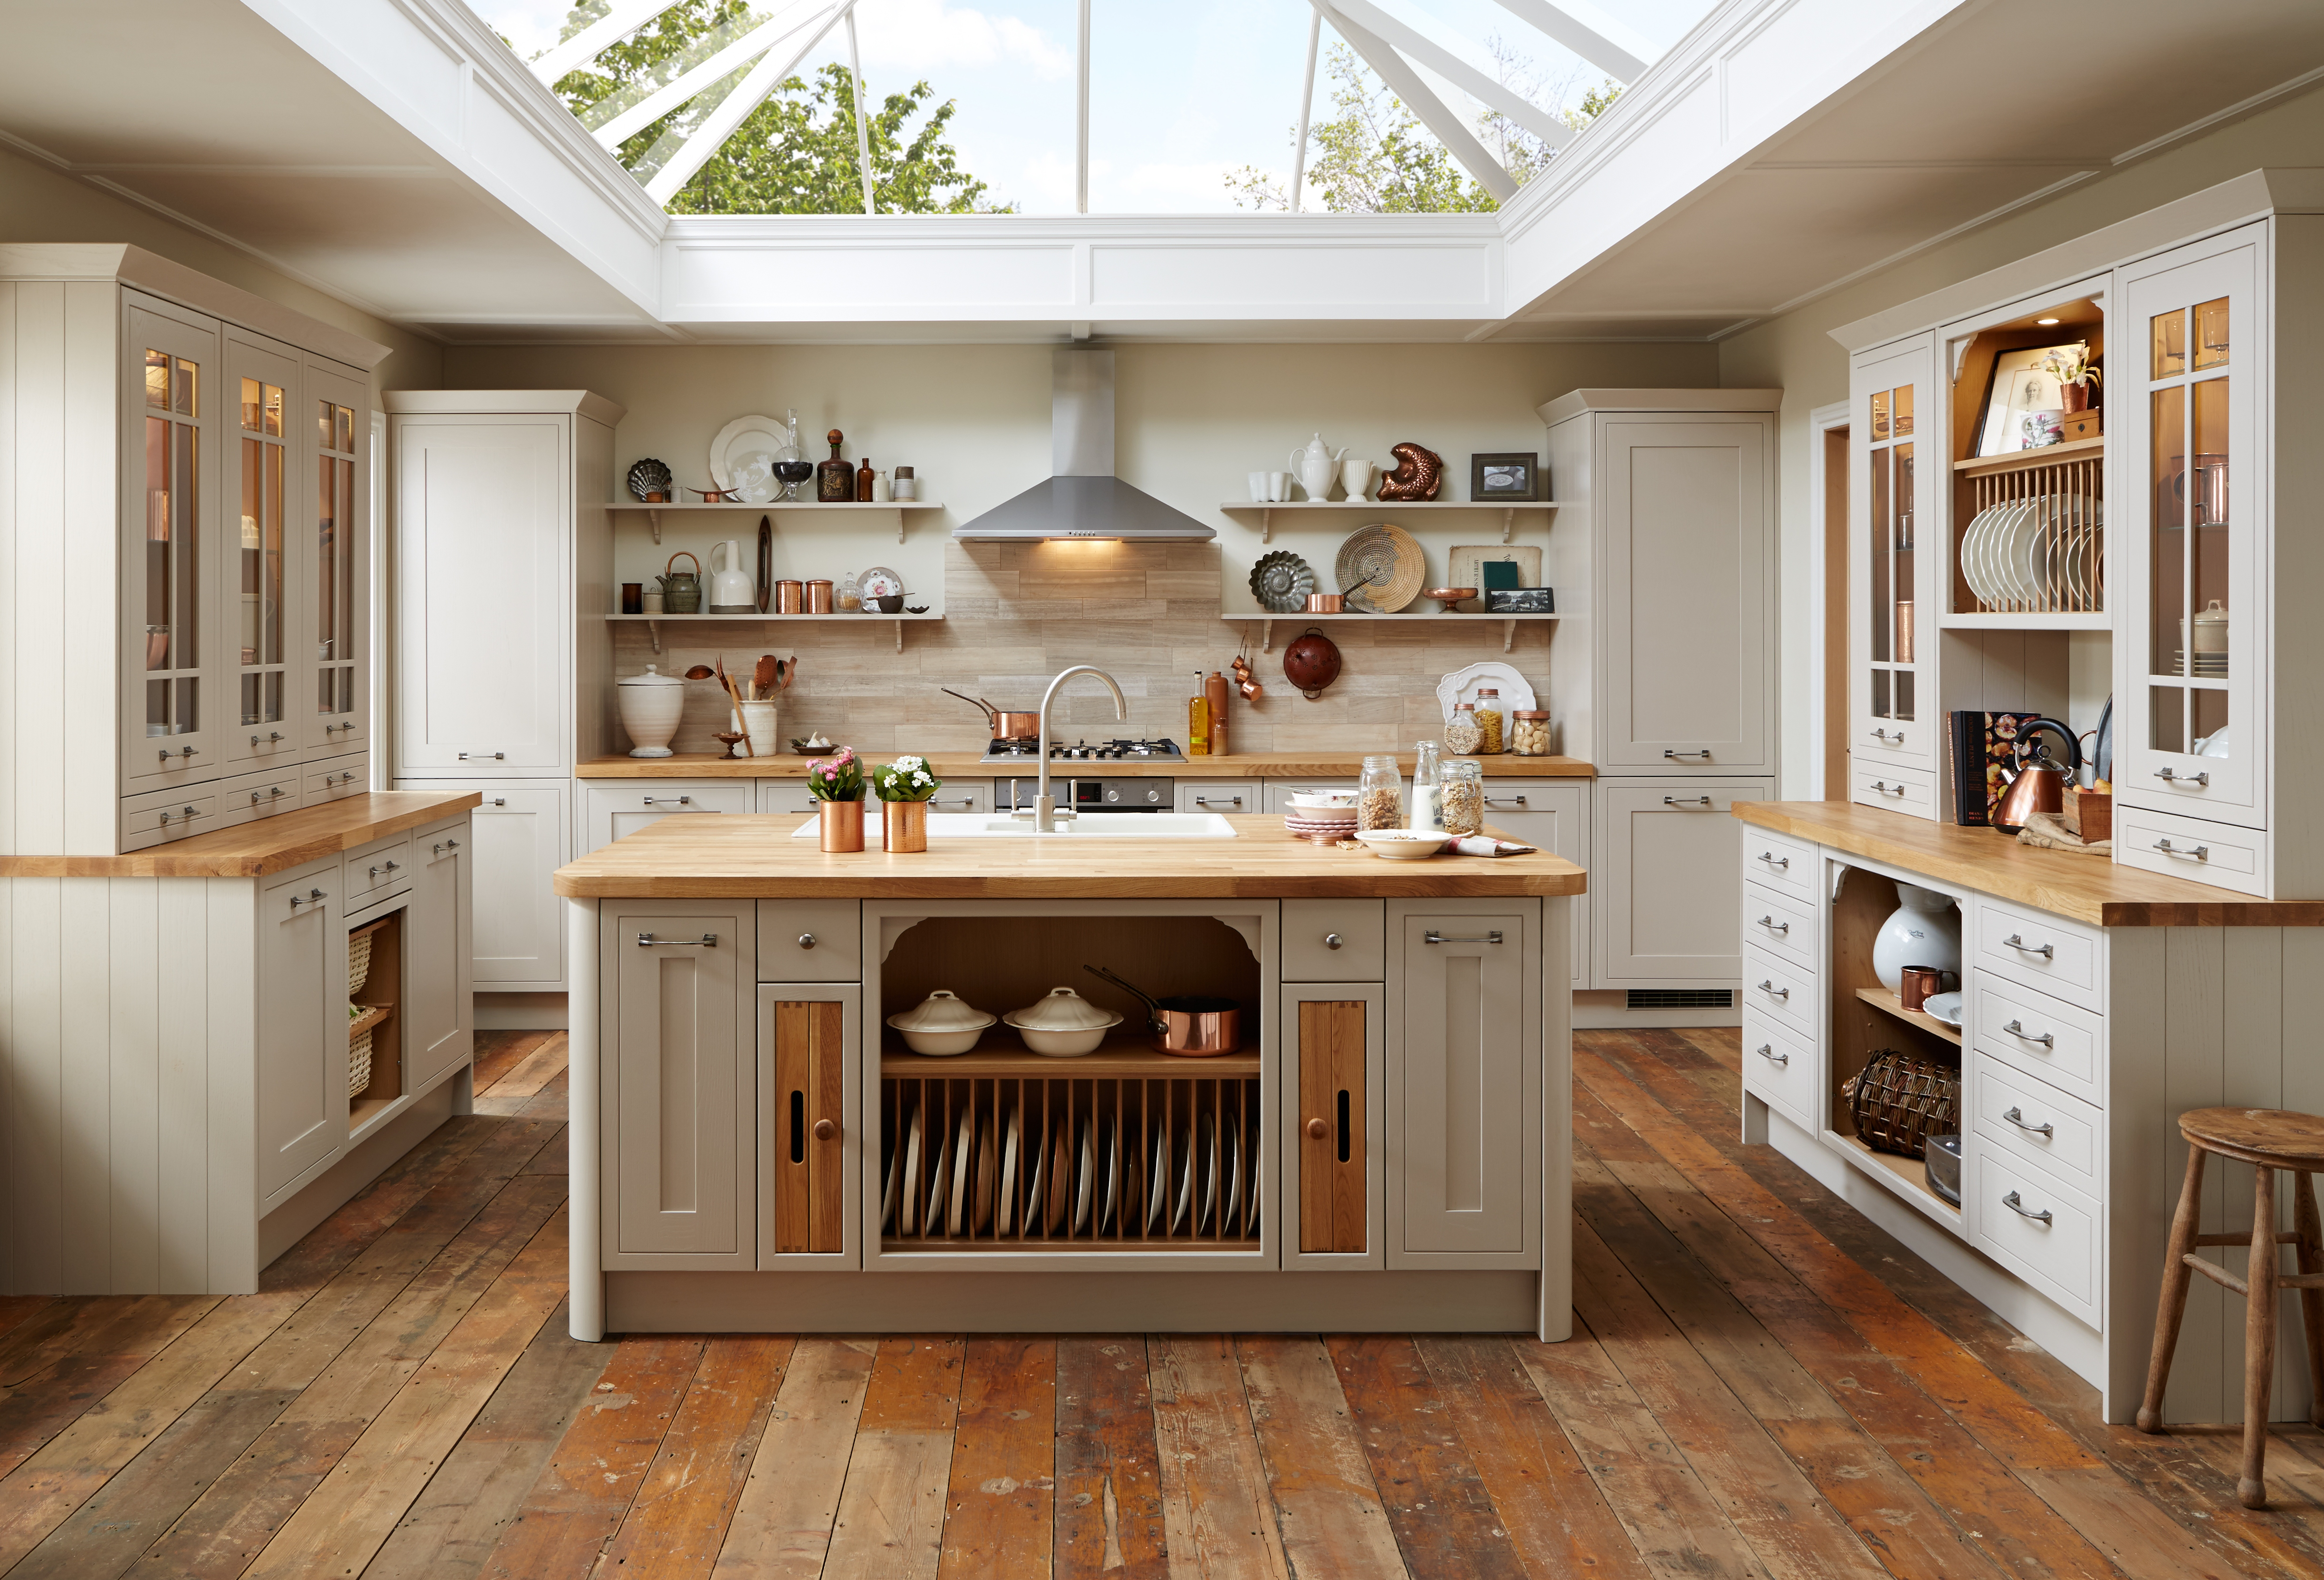 Howden joinery ltd royal warrant holders association for Kitchen company